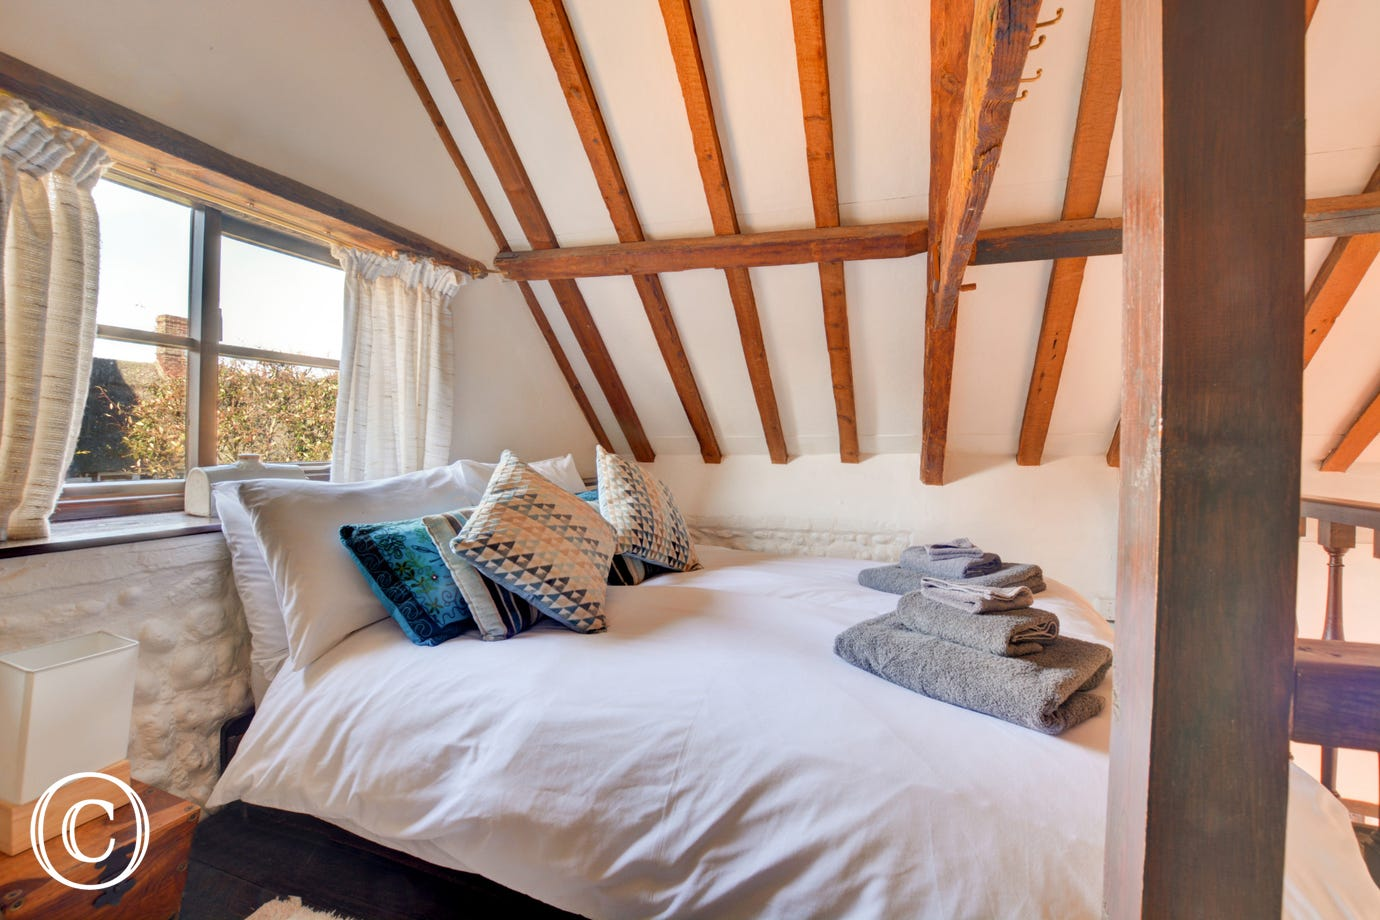 Characterful gallieried double bedroom which can be accessed from the dining area, steep wooden steps which can be left in position or put into vertical position to give more space below and a double low-level bed, drawers and hanging space.